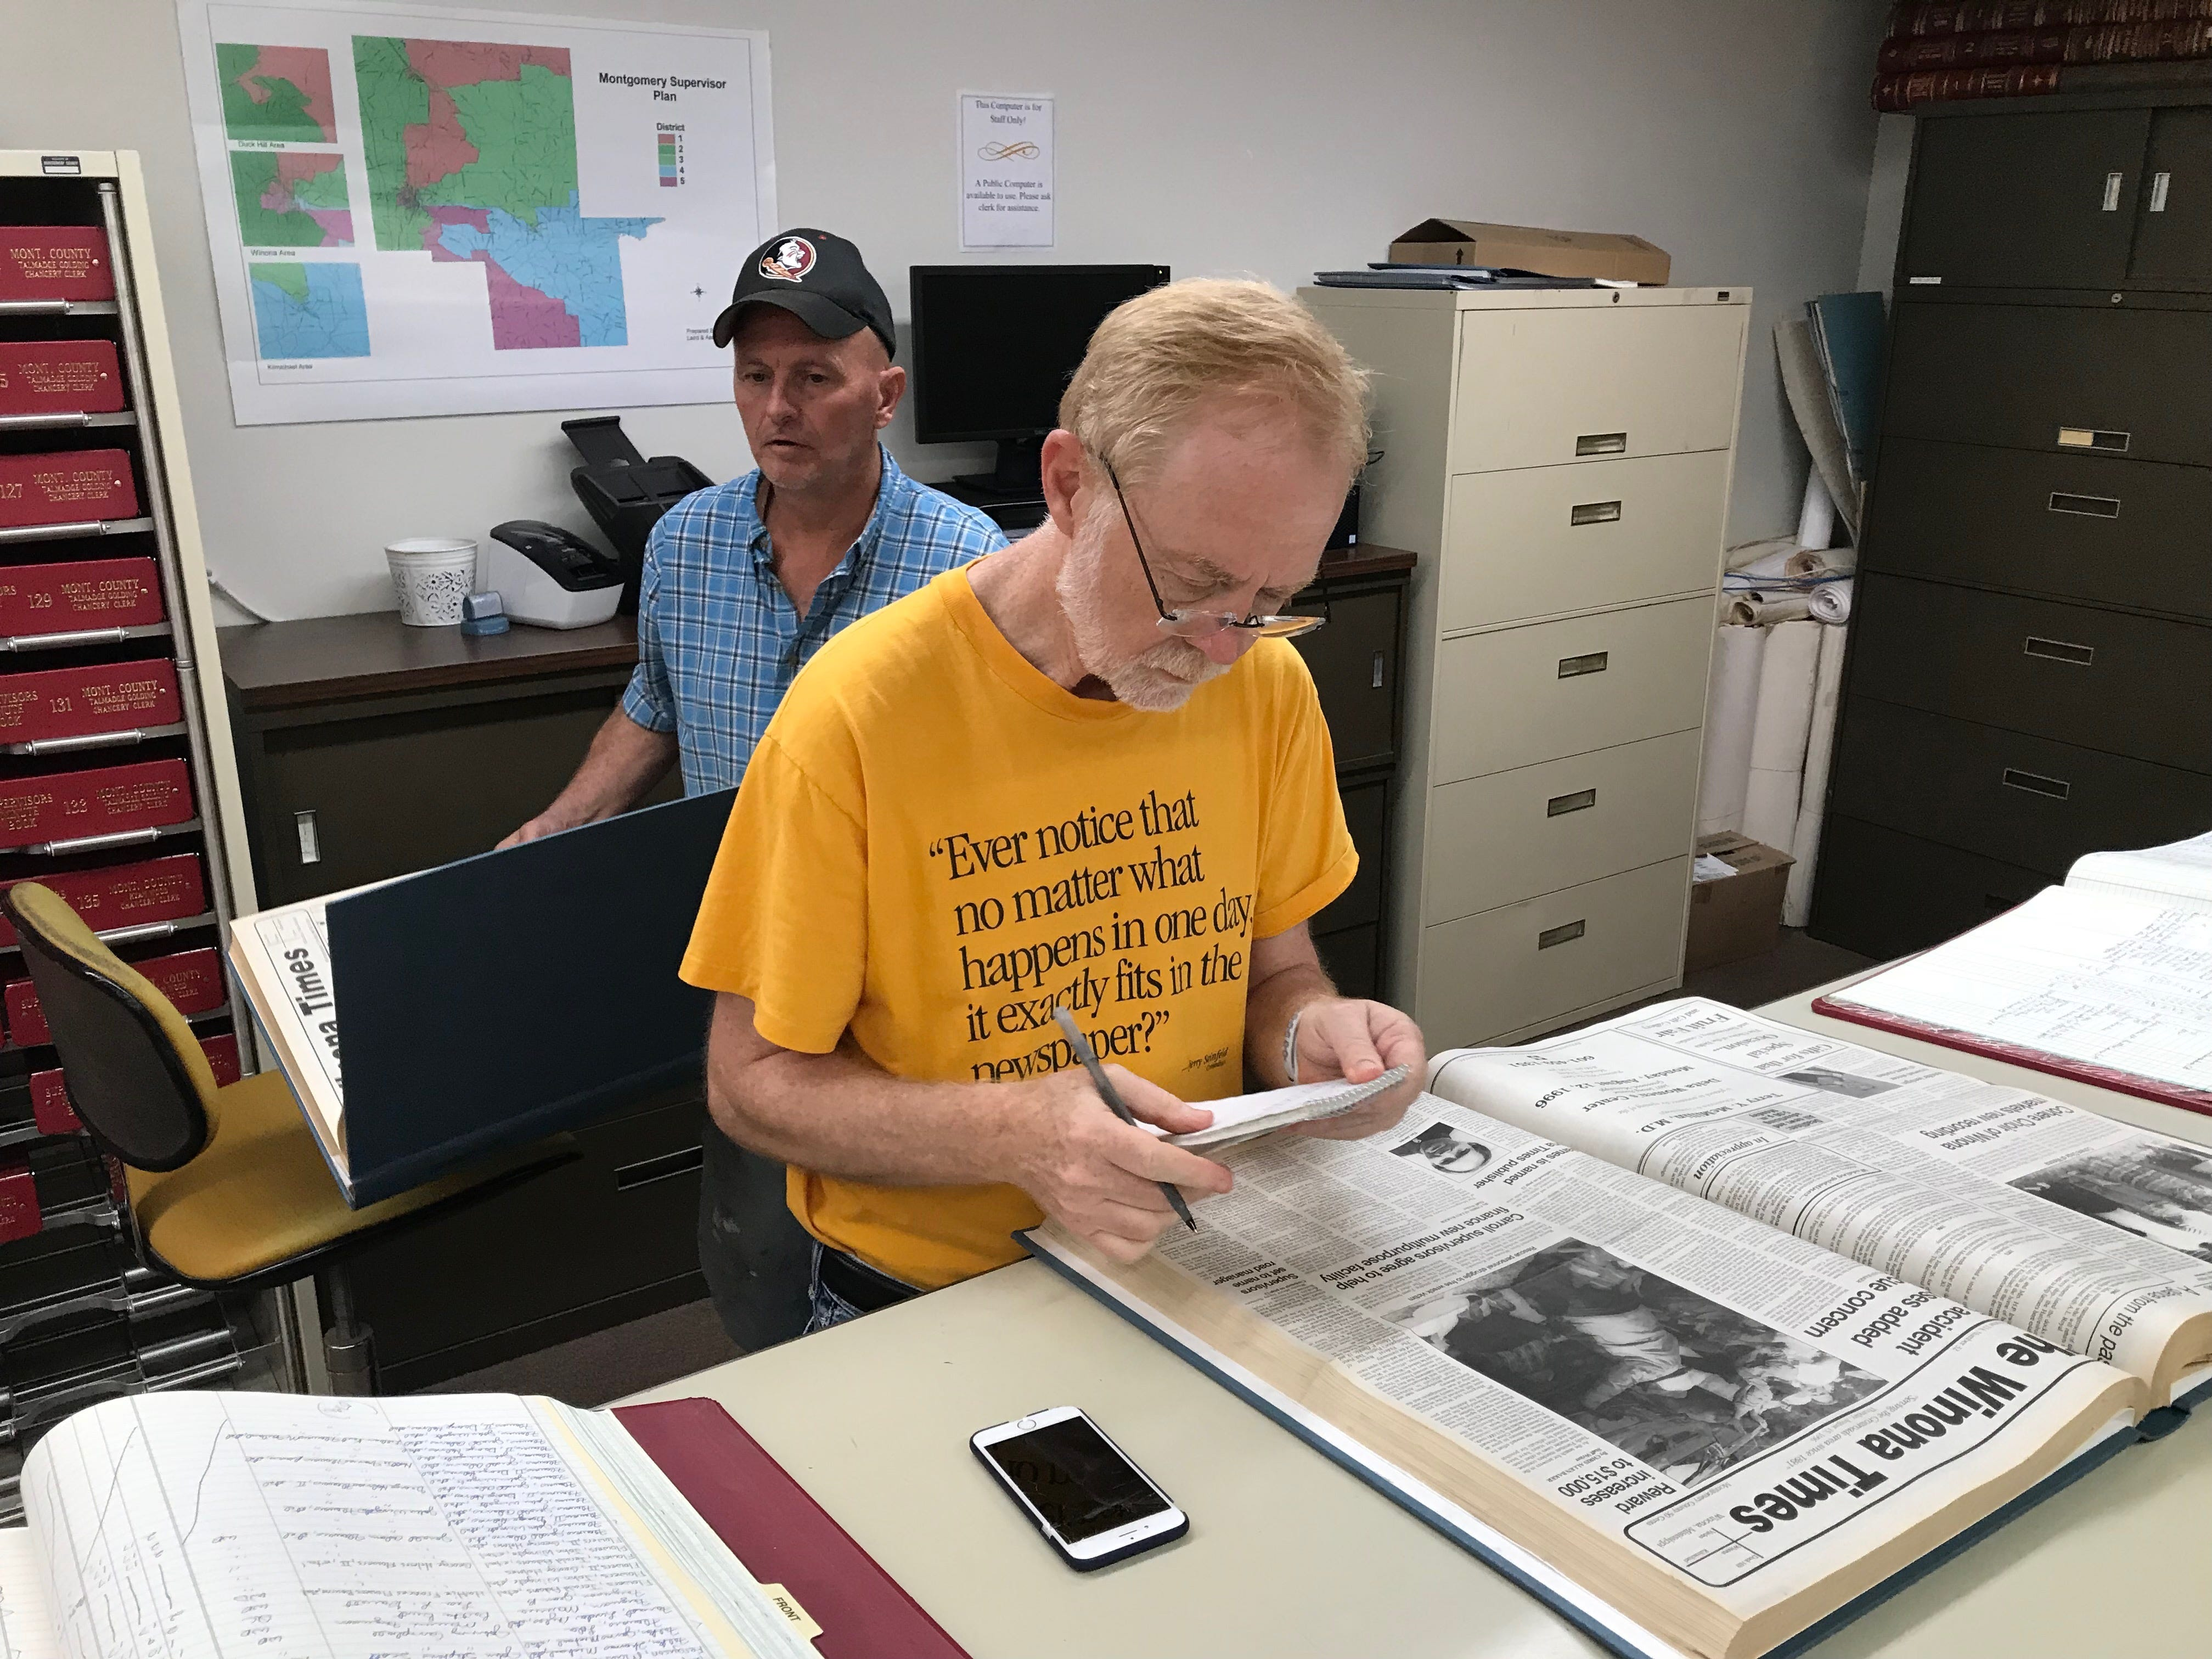 Jeffery Armstrong (left) and Clarion Ledger investigative reporter Jerry Mitchell (right) look through local records for The Winona Times publication at the Montgomery County Chancery Clerk's office. Jeffrey Armstrong found a .38 caliber gun outside his mother's former home close to the scene of the 1996 Tardy Furniture quadruple murders- the case for which Parchman Prison inmate Curtis Flowers and Winona local has been tried 6 times since 1996. Thursday, July 19, 2018.